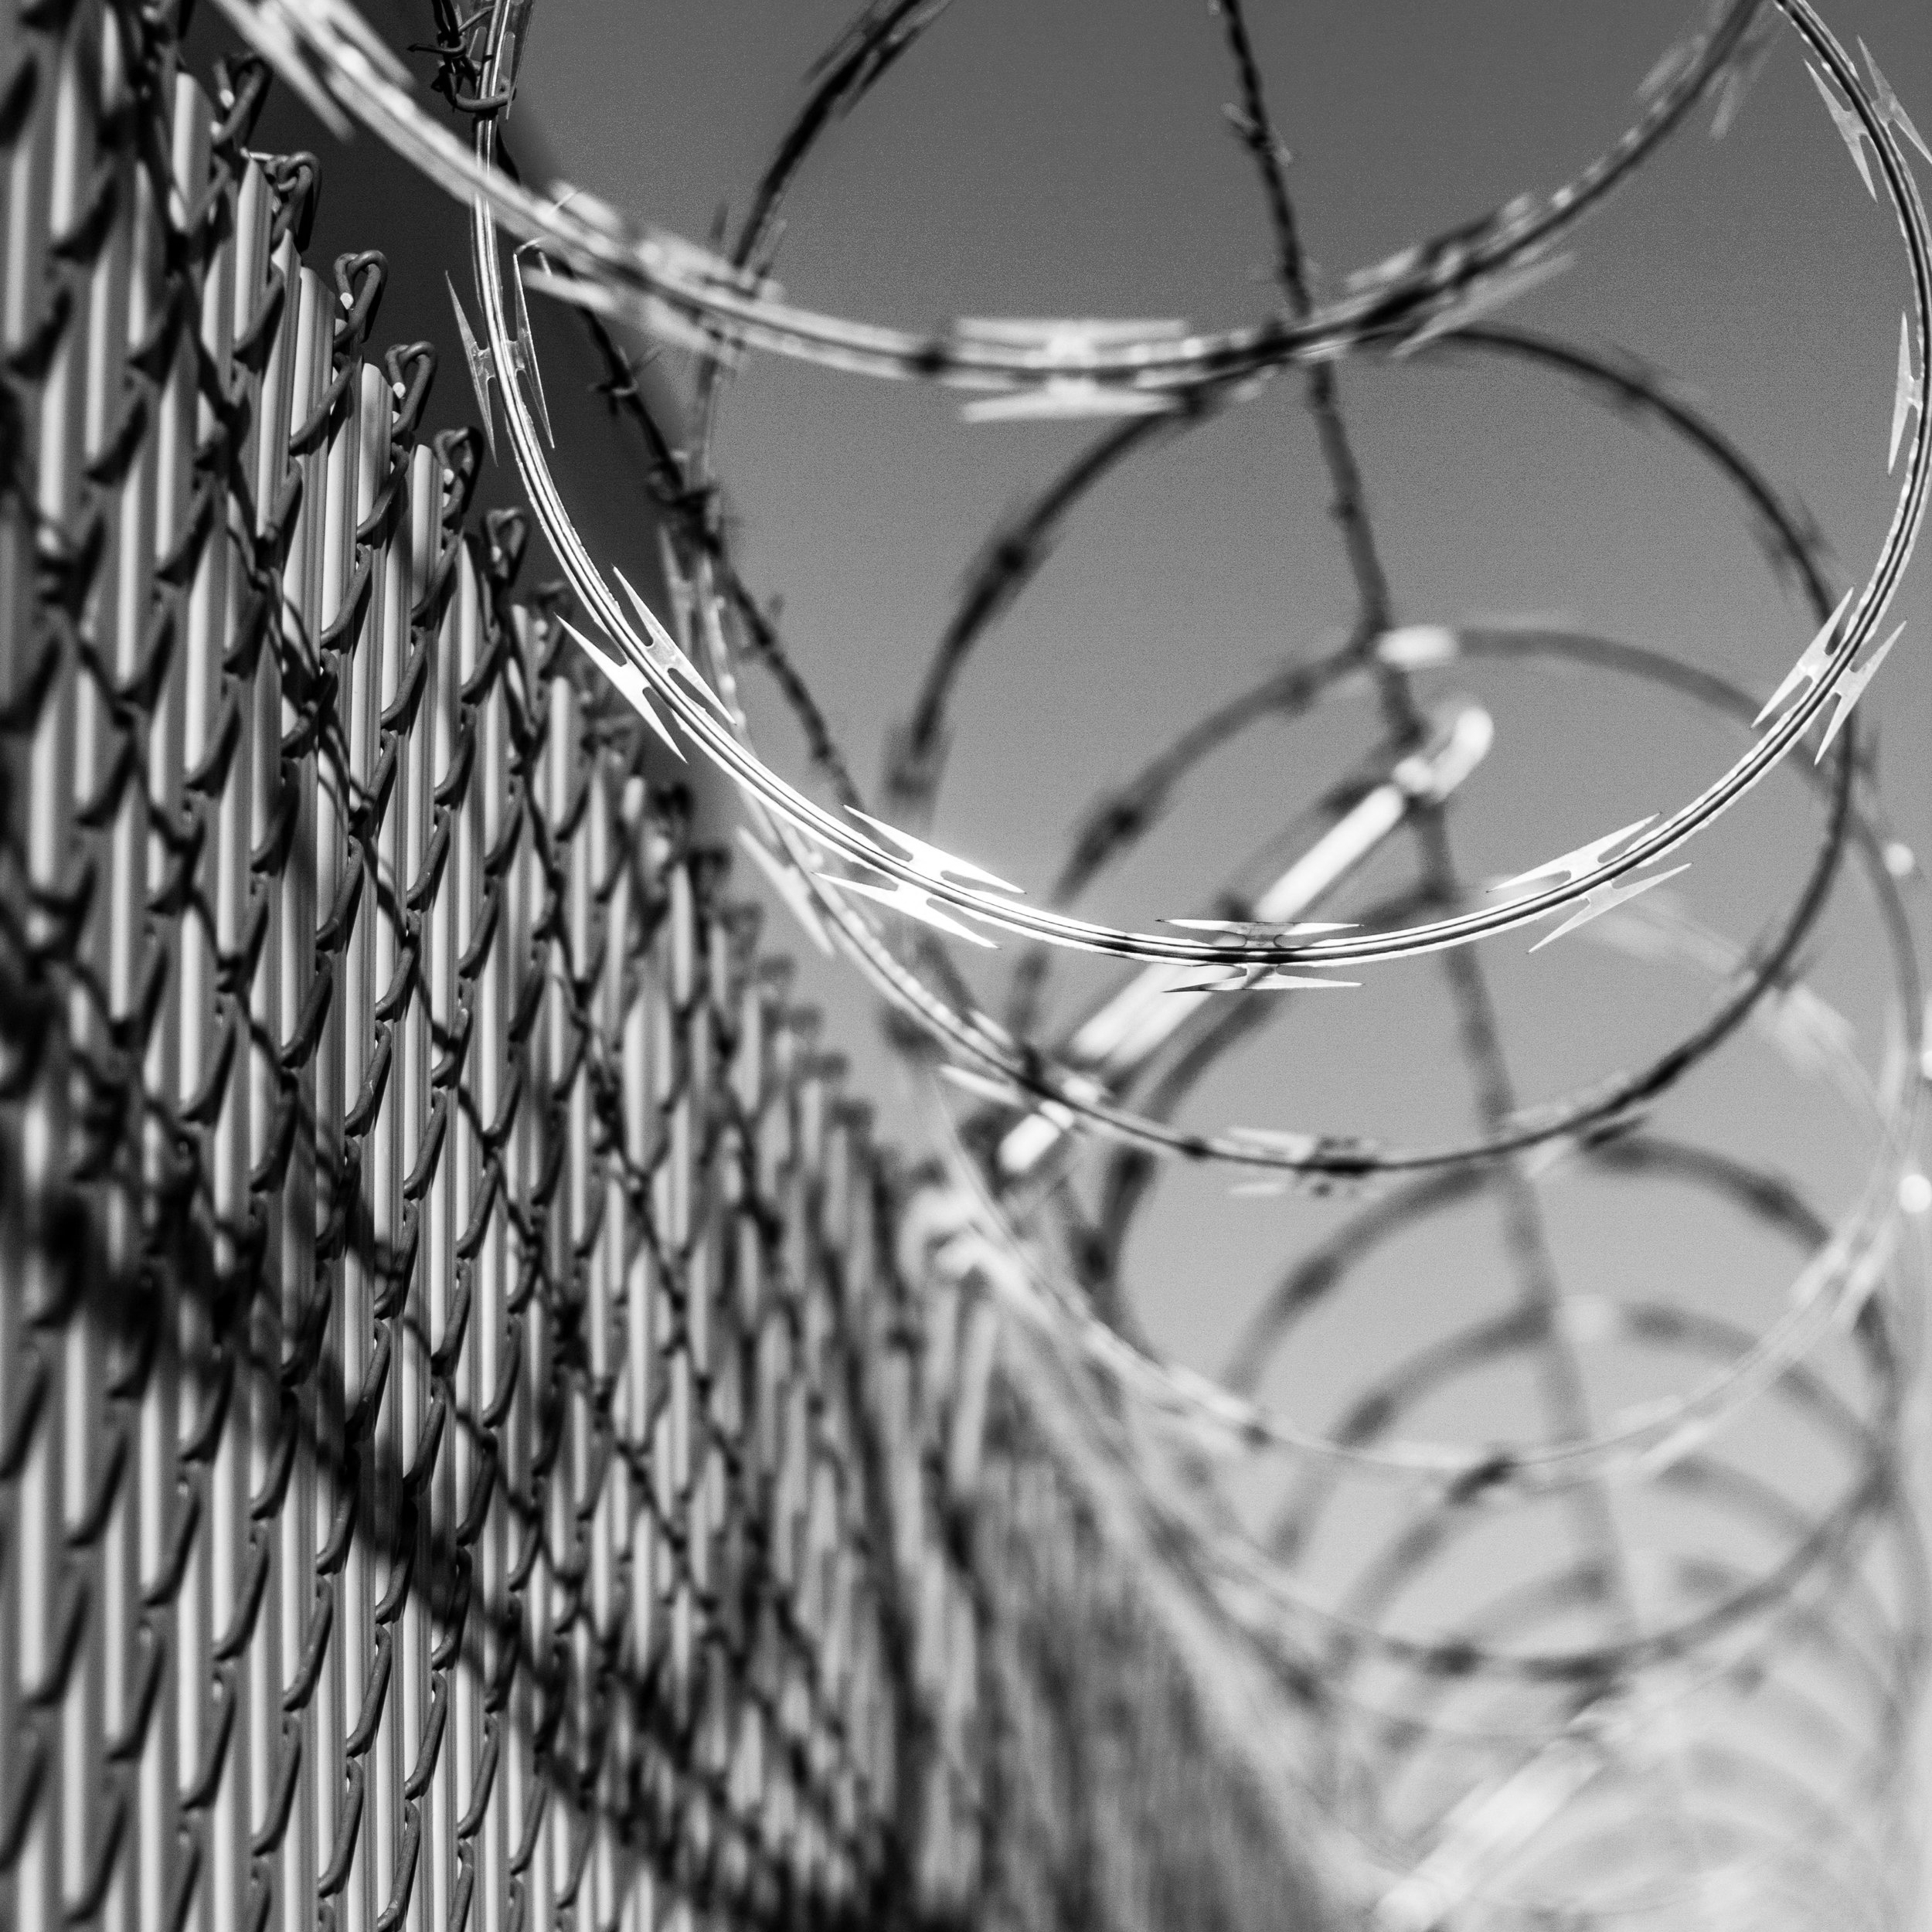 The United States has less than 5 percent of the world's population but almost 25 percent of the total prison population. A significant percentage of the more than 2 million Americans incarcerated today are nonviolent offenders. African American men are far more likely to be stopped and searched by police, charged with crimes, and sentenced to longer prison terms than white men found guilty of the same offenses.  We devote far too many resources on over-incarceration and misguided crime policies, money that could be better spent providing education, training, and jobs to those who might otherwise get lost in the criminal justice system.  We must do a better job from the state to the local level in bringing law enforcement agencies together to define the use and limits of police force. In addition, I will work to create policy for increased community engagement from law enforcement agencies in order to develop bonds of trust in our neighborhoods.  We don't need to keep incarcerating the masses. Instead I advocate for smarter gun control as well as stronger policies to prevent domestic violence and sexual assault.  Reforming our criminal justice system is paramount to helping advance opportunities for our most challenging communities. I support Elimination of Mandatory Minimums, Legalized Cannabis Industry, and creating a Prince George's County Community Police Review Board with authority to remove officers who've abused their power.    Cannabis     Far too many of our neighbors are still being incarcerated for nonviolent crimes, including for possessing small amounts of marijuana. I fully support the legalization of medicinal and recreational marijuana. But for where it is not legal, I support the popular policy of cities to cite and release in these instances.  The medical breakthroughs being made in cellular cancer cells by cannabinoids found in Marijuana is too much to ignore. Cancer patients in particular deserve access to alternative treatment methods when all e